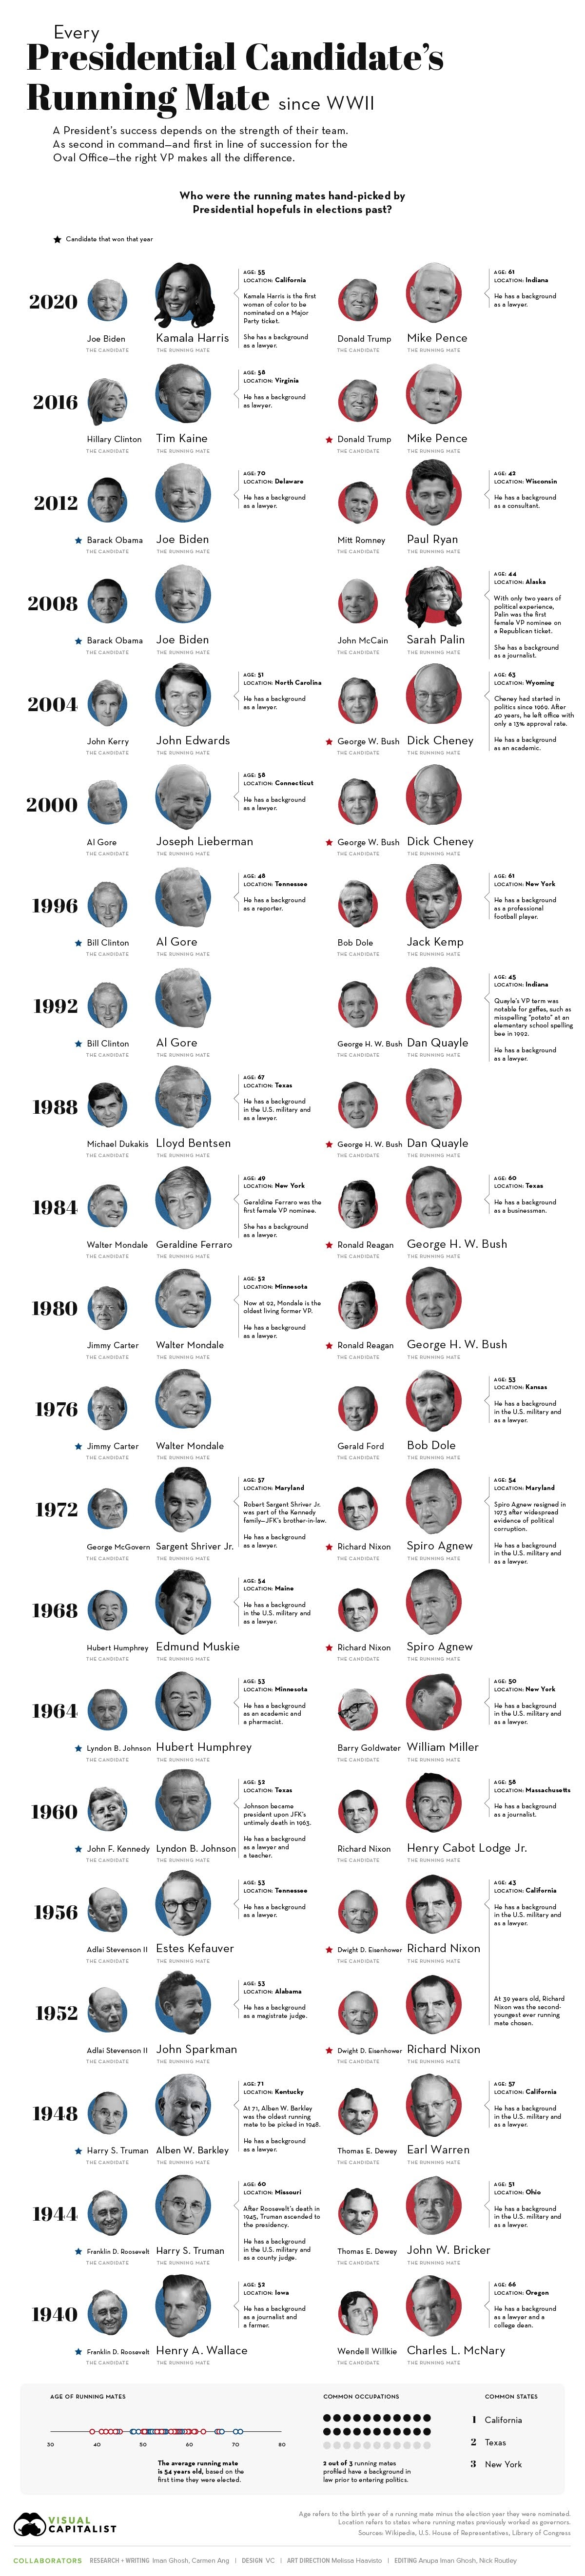 every-presidential-candidates-running-mate-since-wwii-infographic